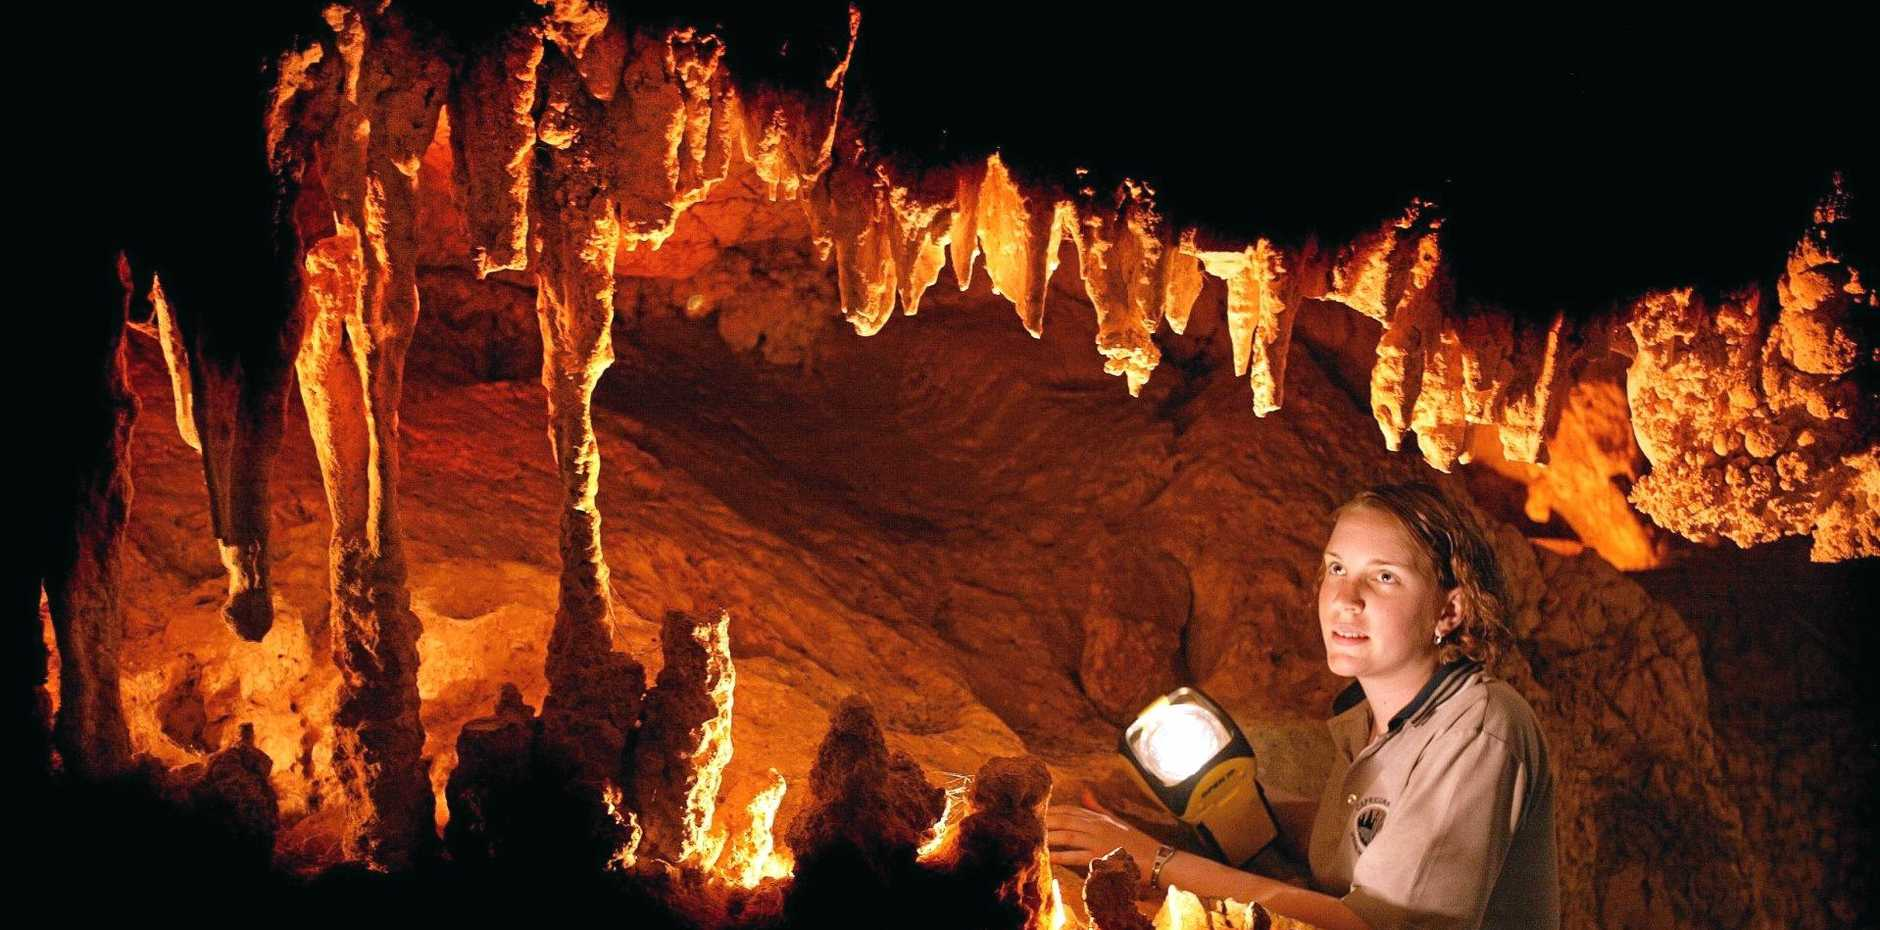 The Capricorn Caves placed 66th in Queensland's Ultimate 100 Bucket List experience list.